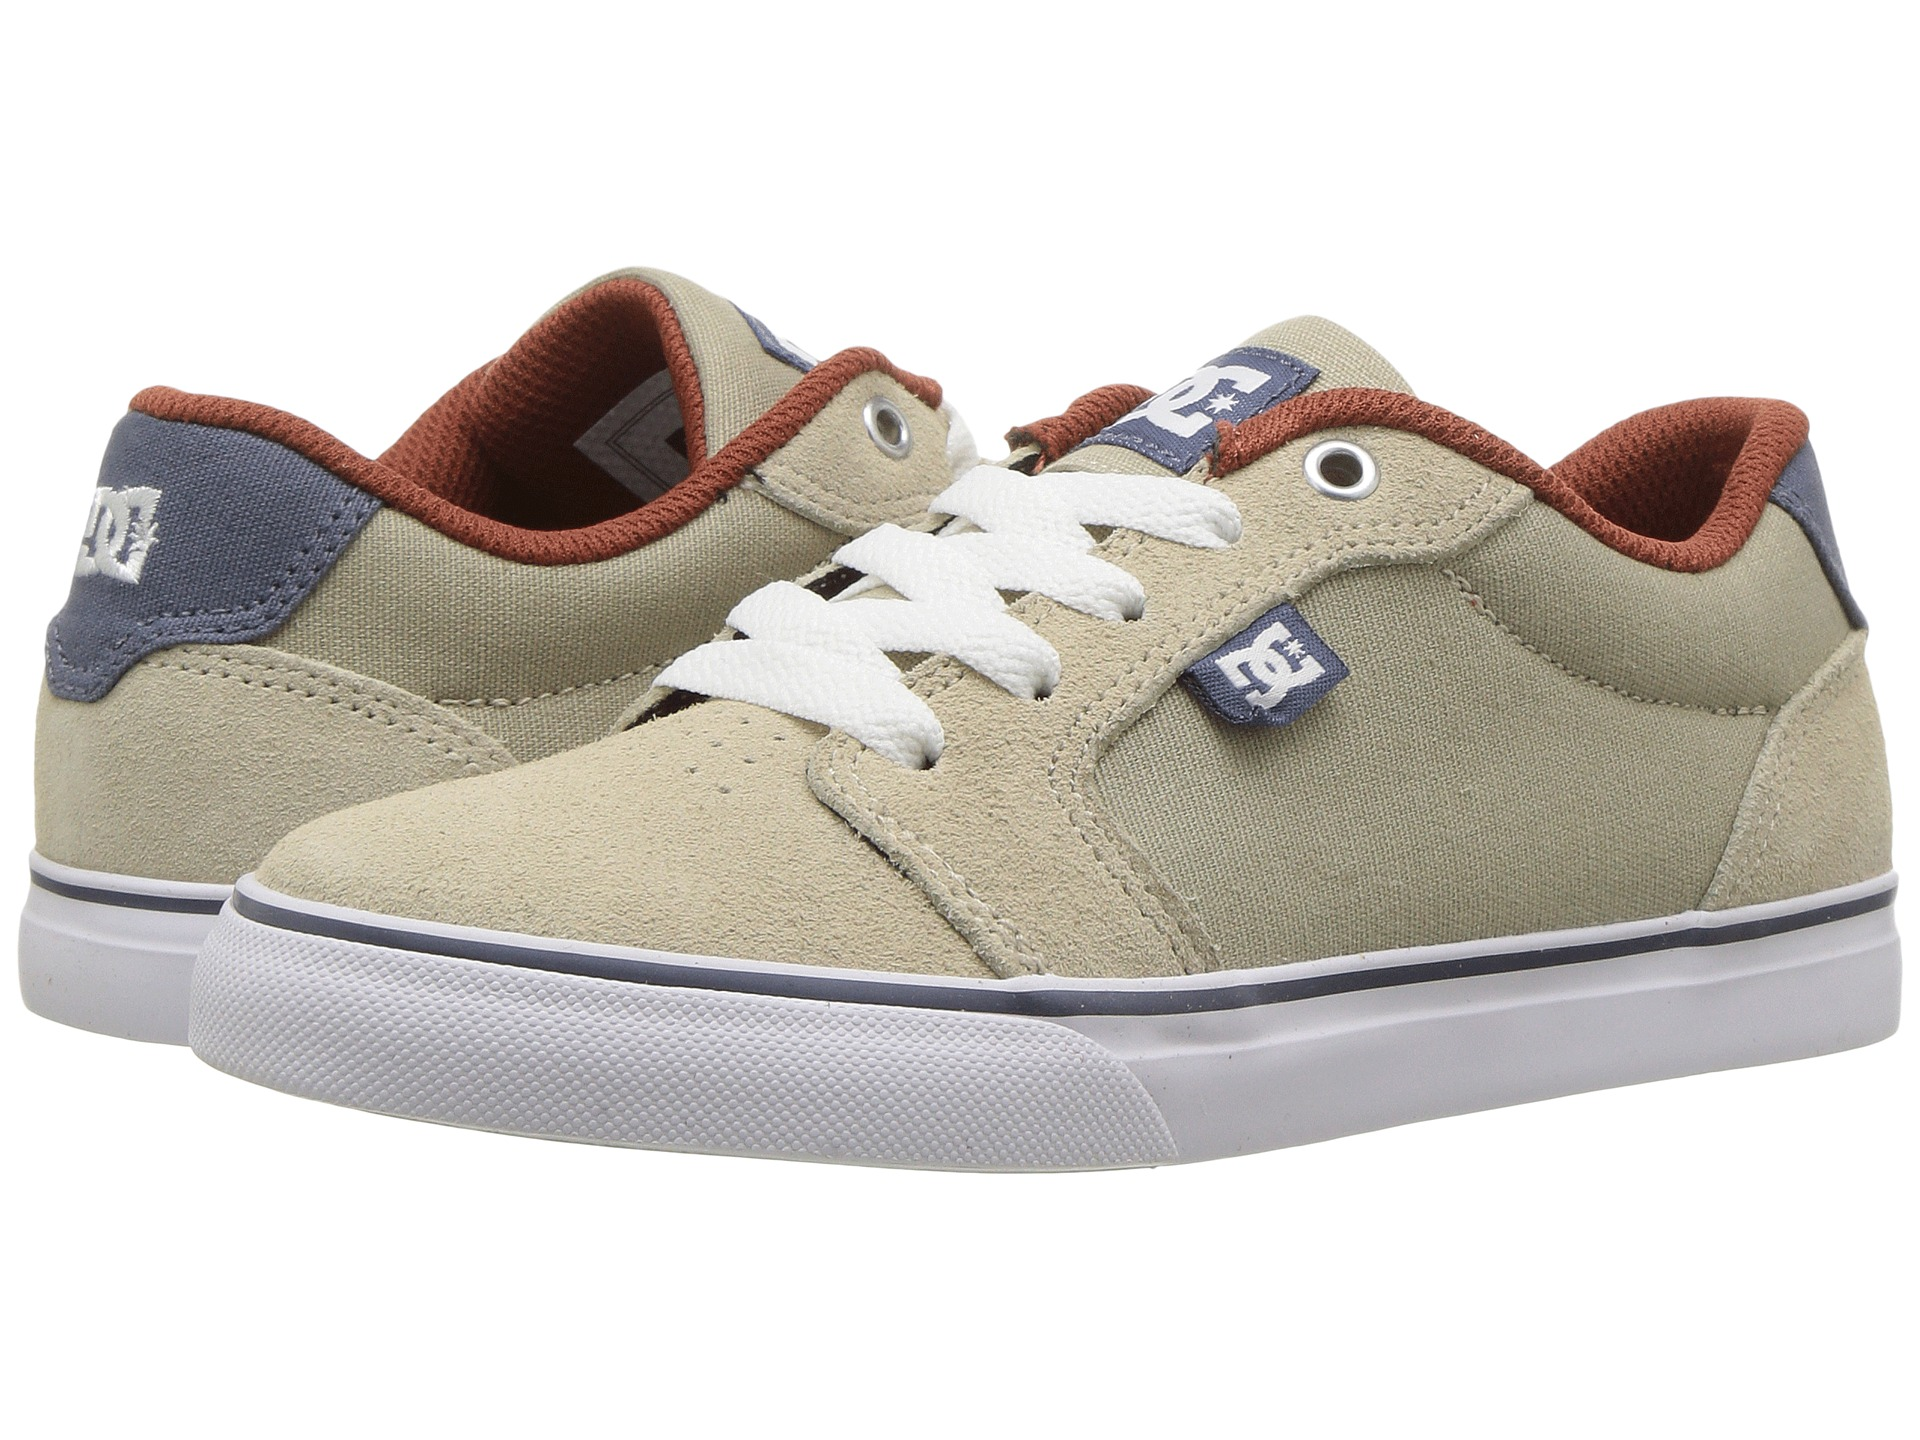 Skate shoes size 9 - View More Like This Dc Kids Anvil Little Kid Big Kid